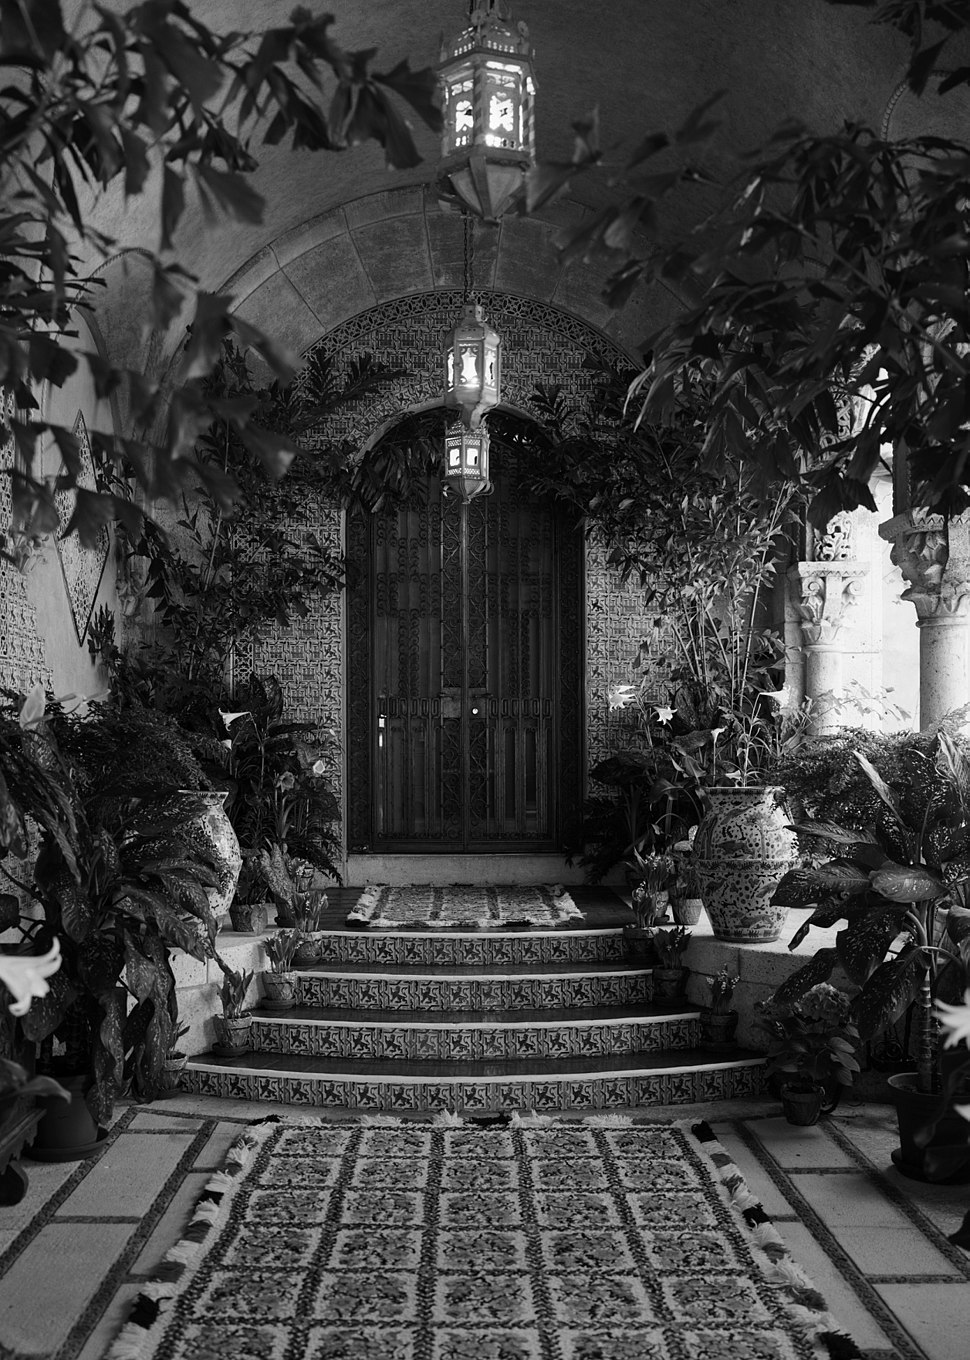 Entrance to Mar-a-Lago owner's suite, April 1967